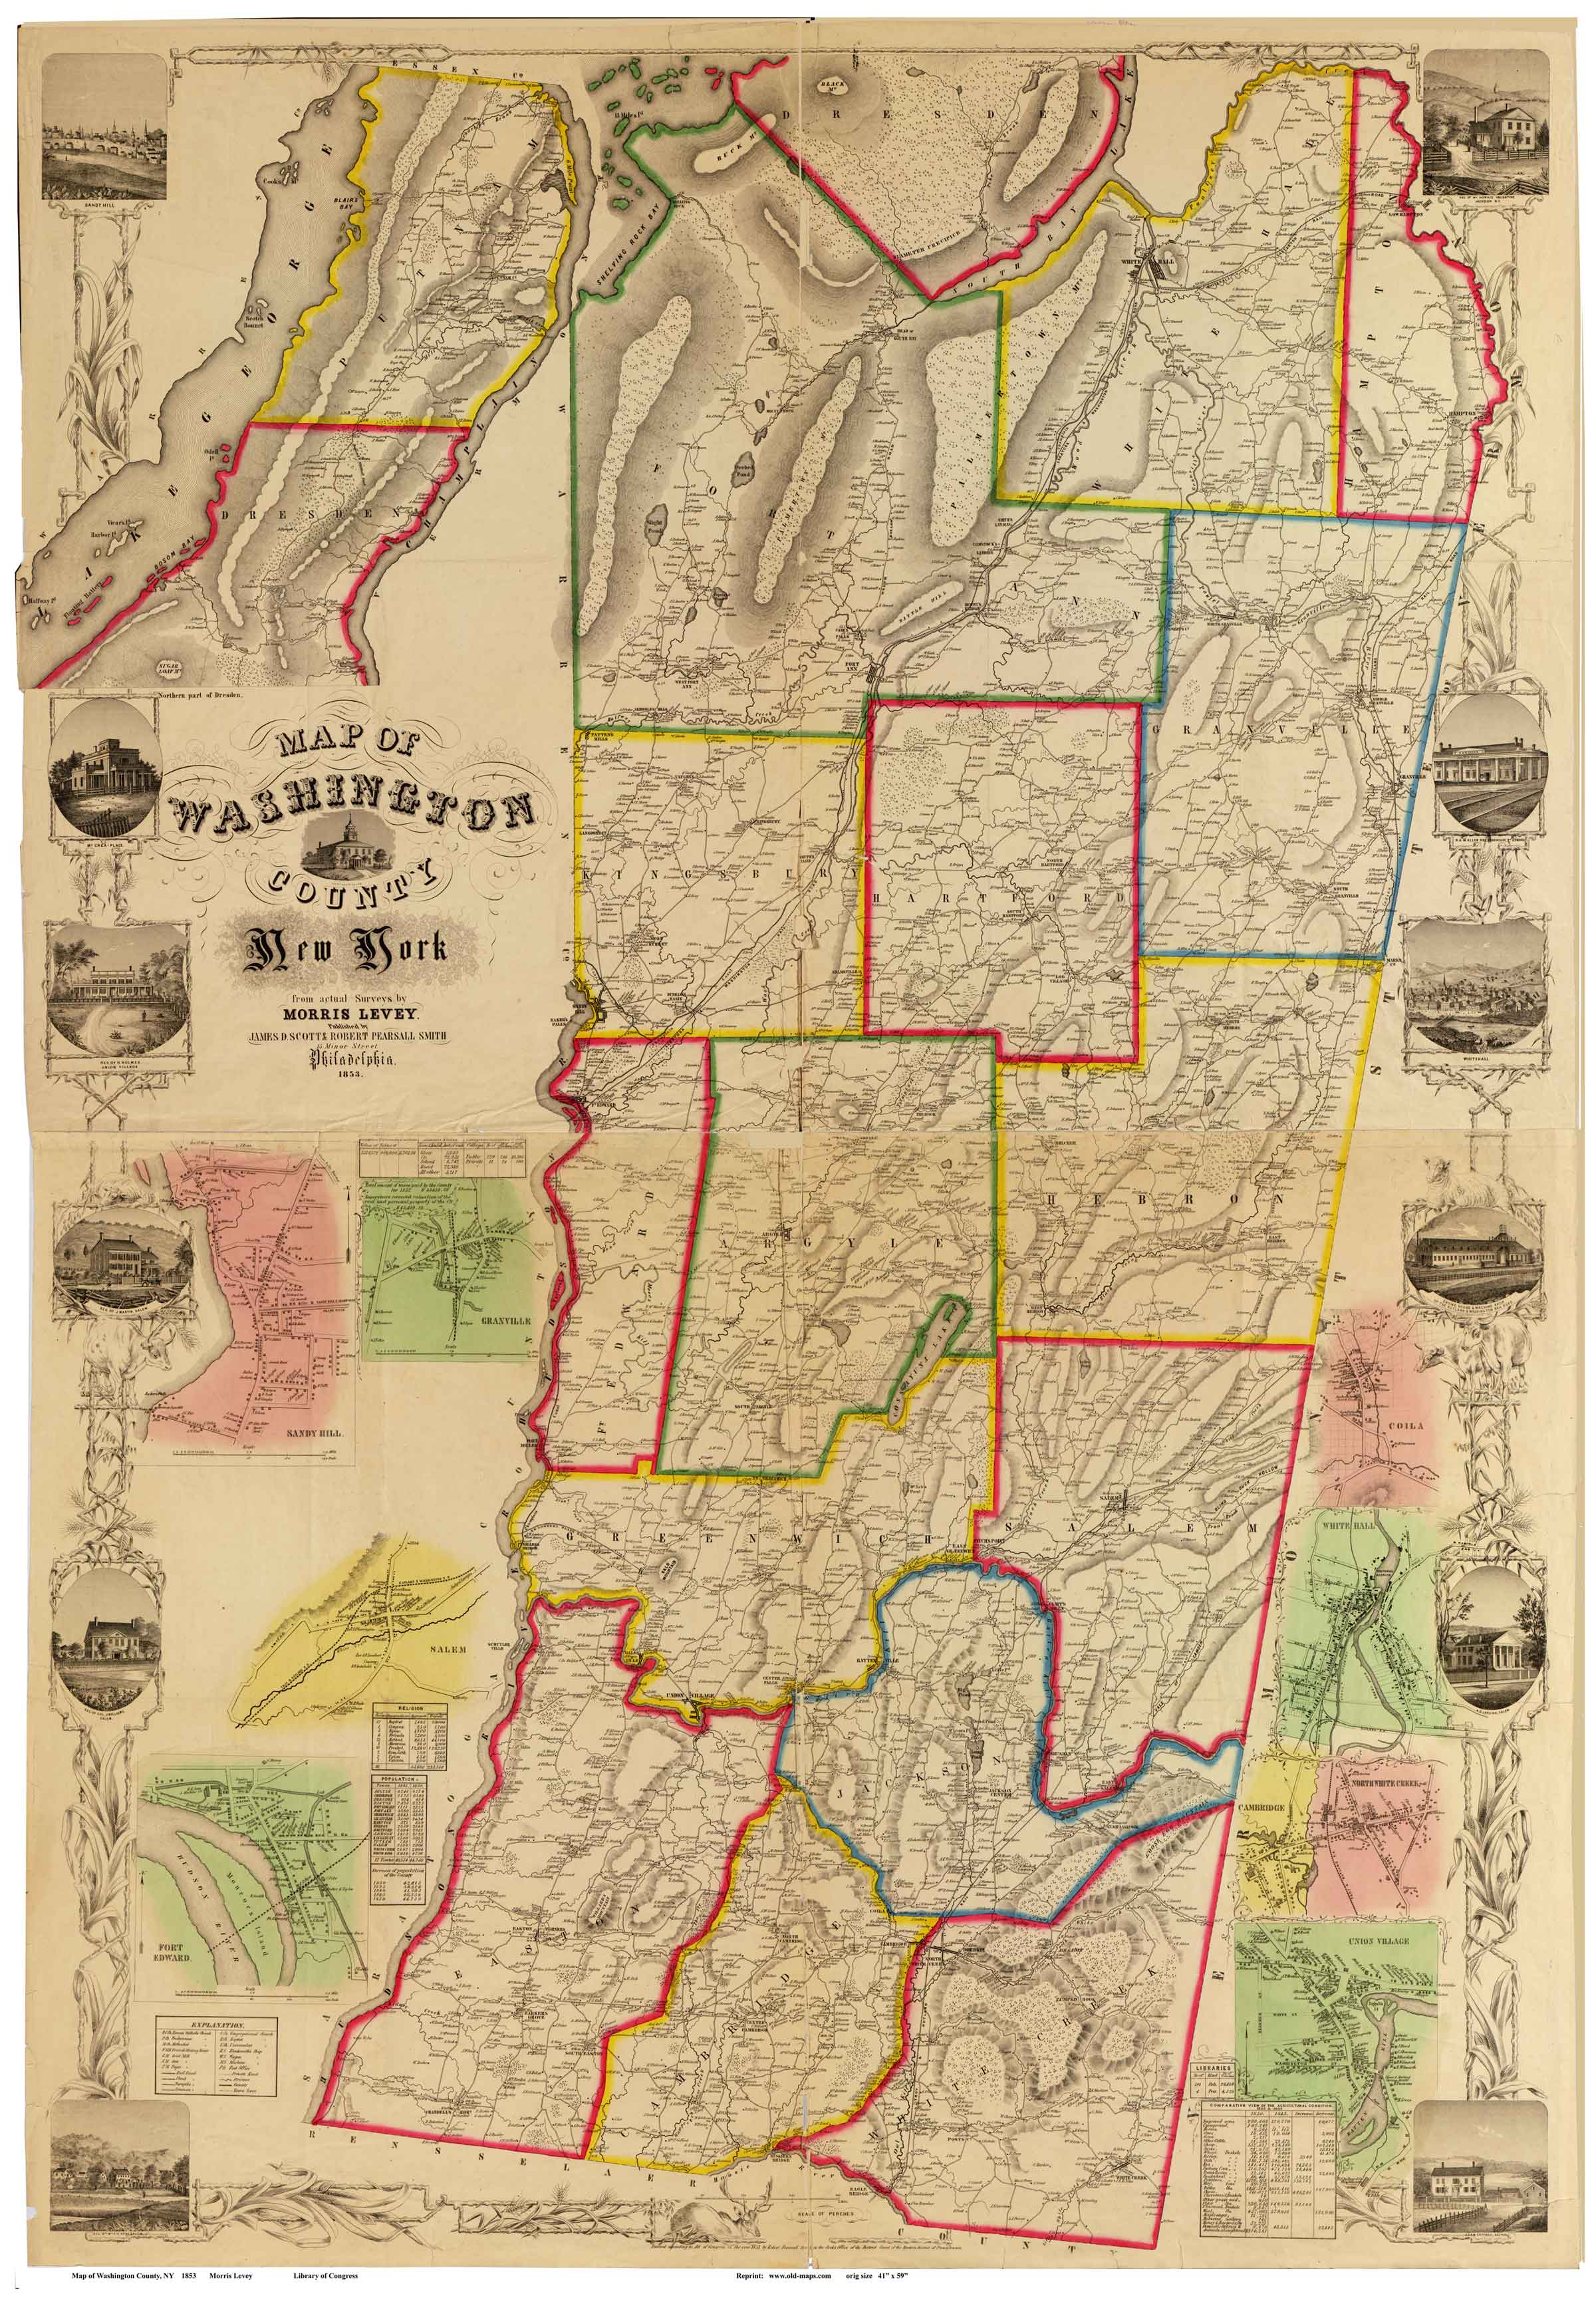 map of towns in westchester county ny.html with County Map Of Ny on New York County Map Ny moreover County Map Of Ny in addition Dutchess County NY also